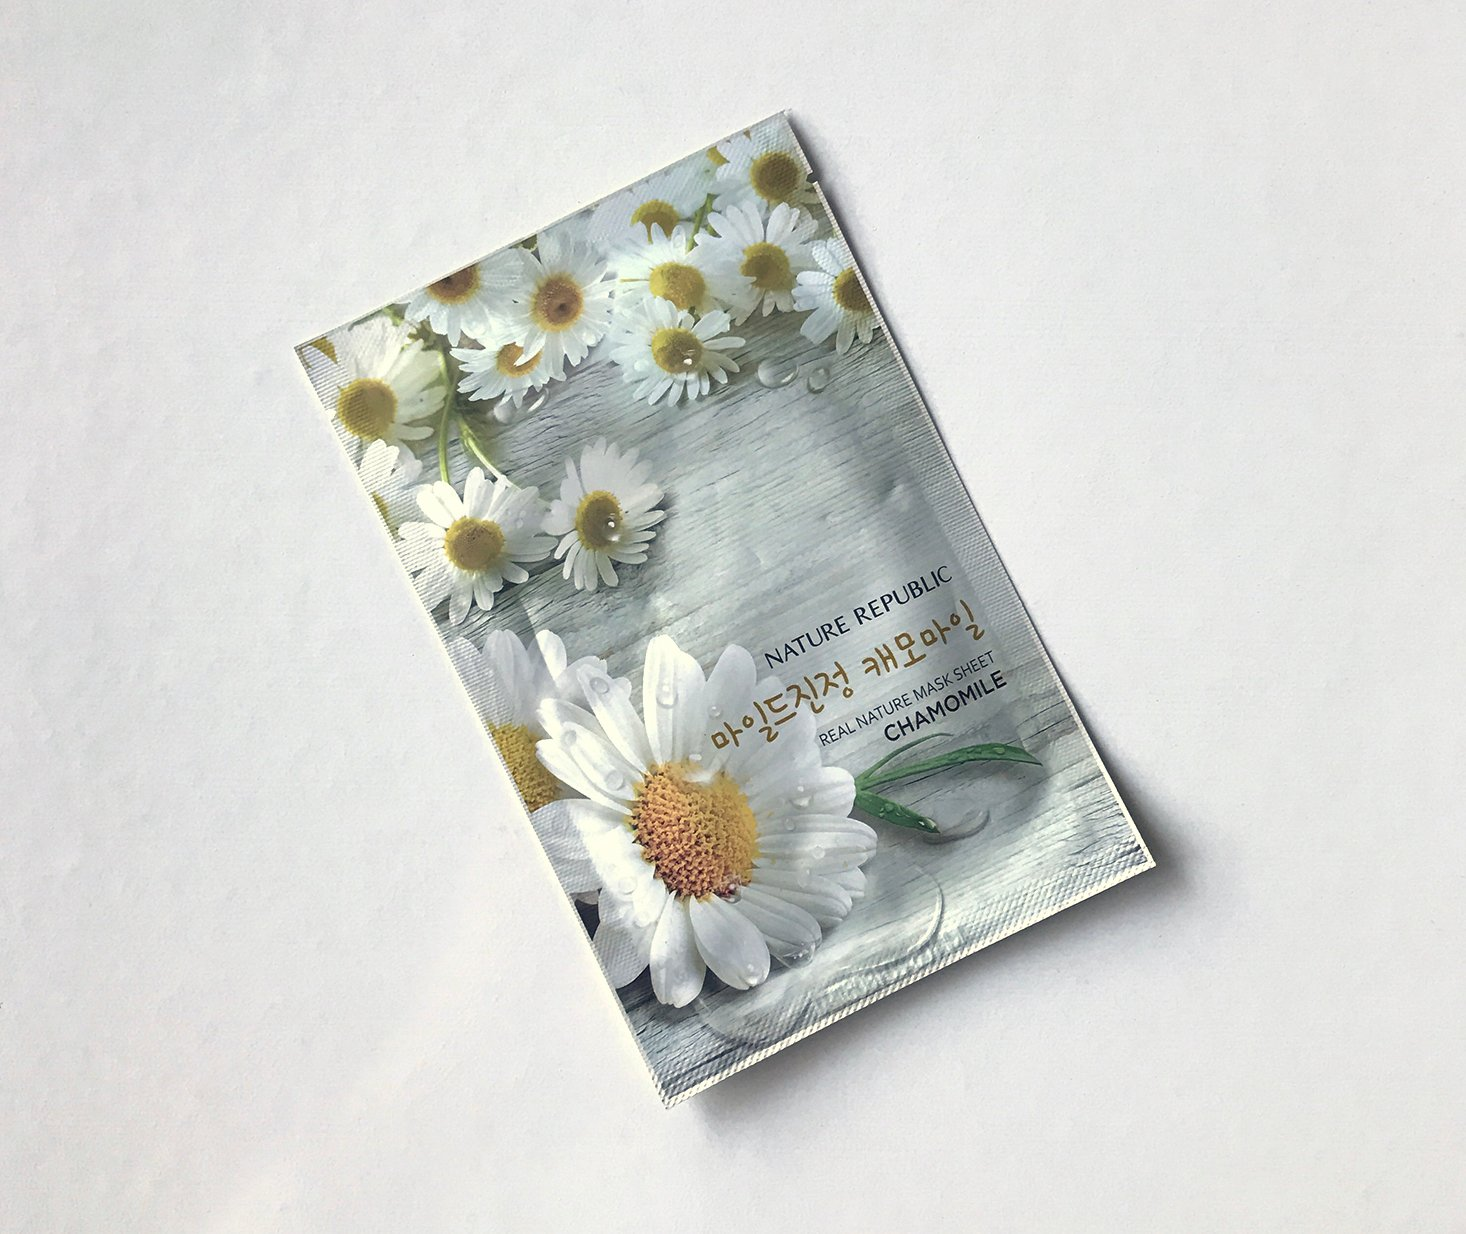 PinkSeoul-Mask-Box-January-2017-Nature-Republic-Mask